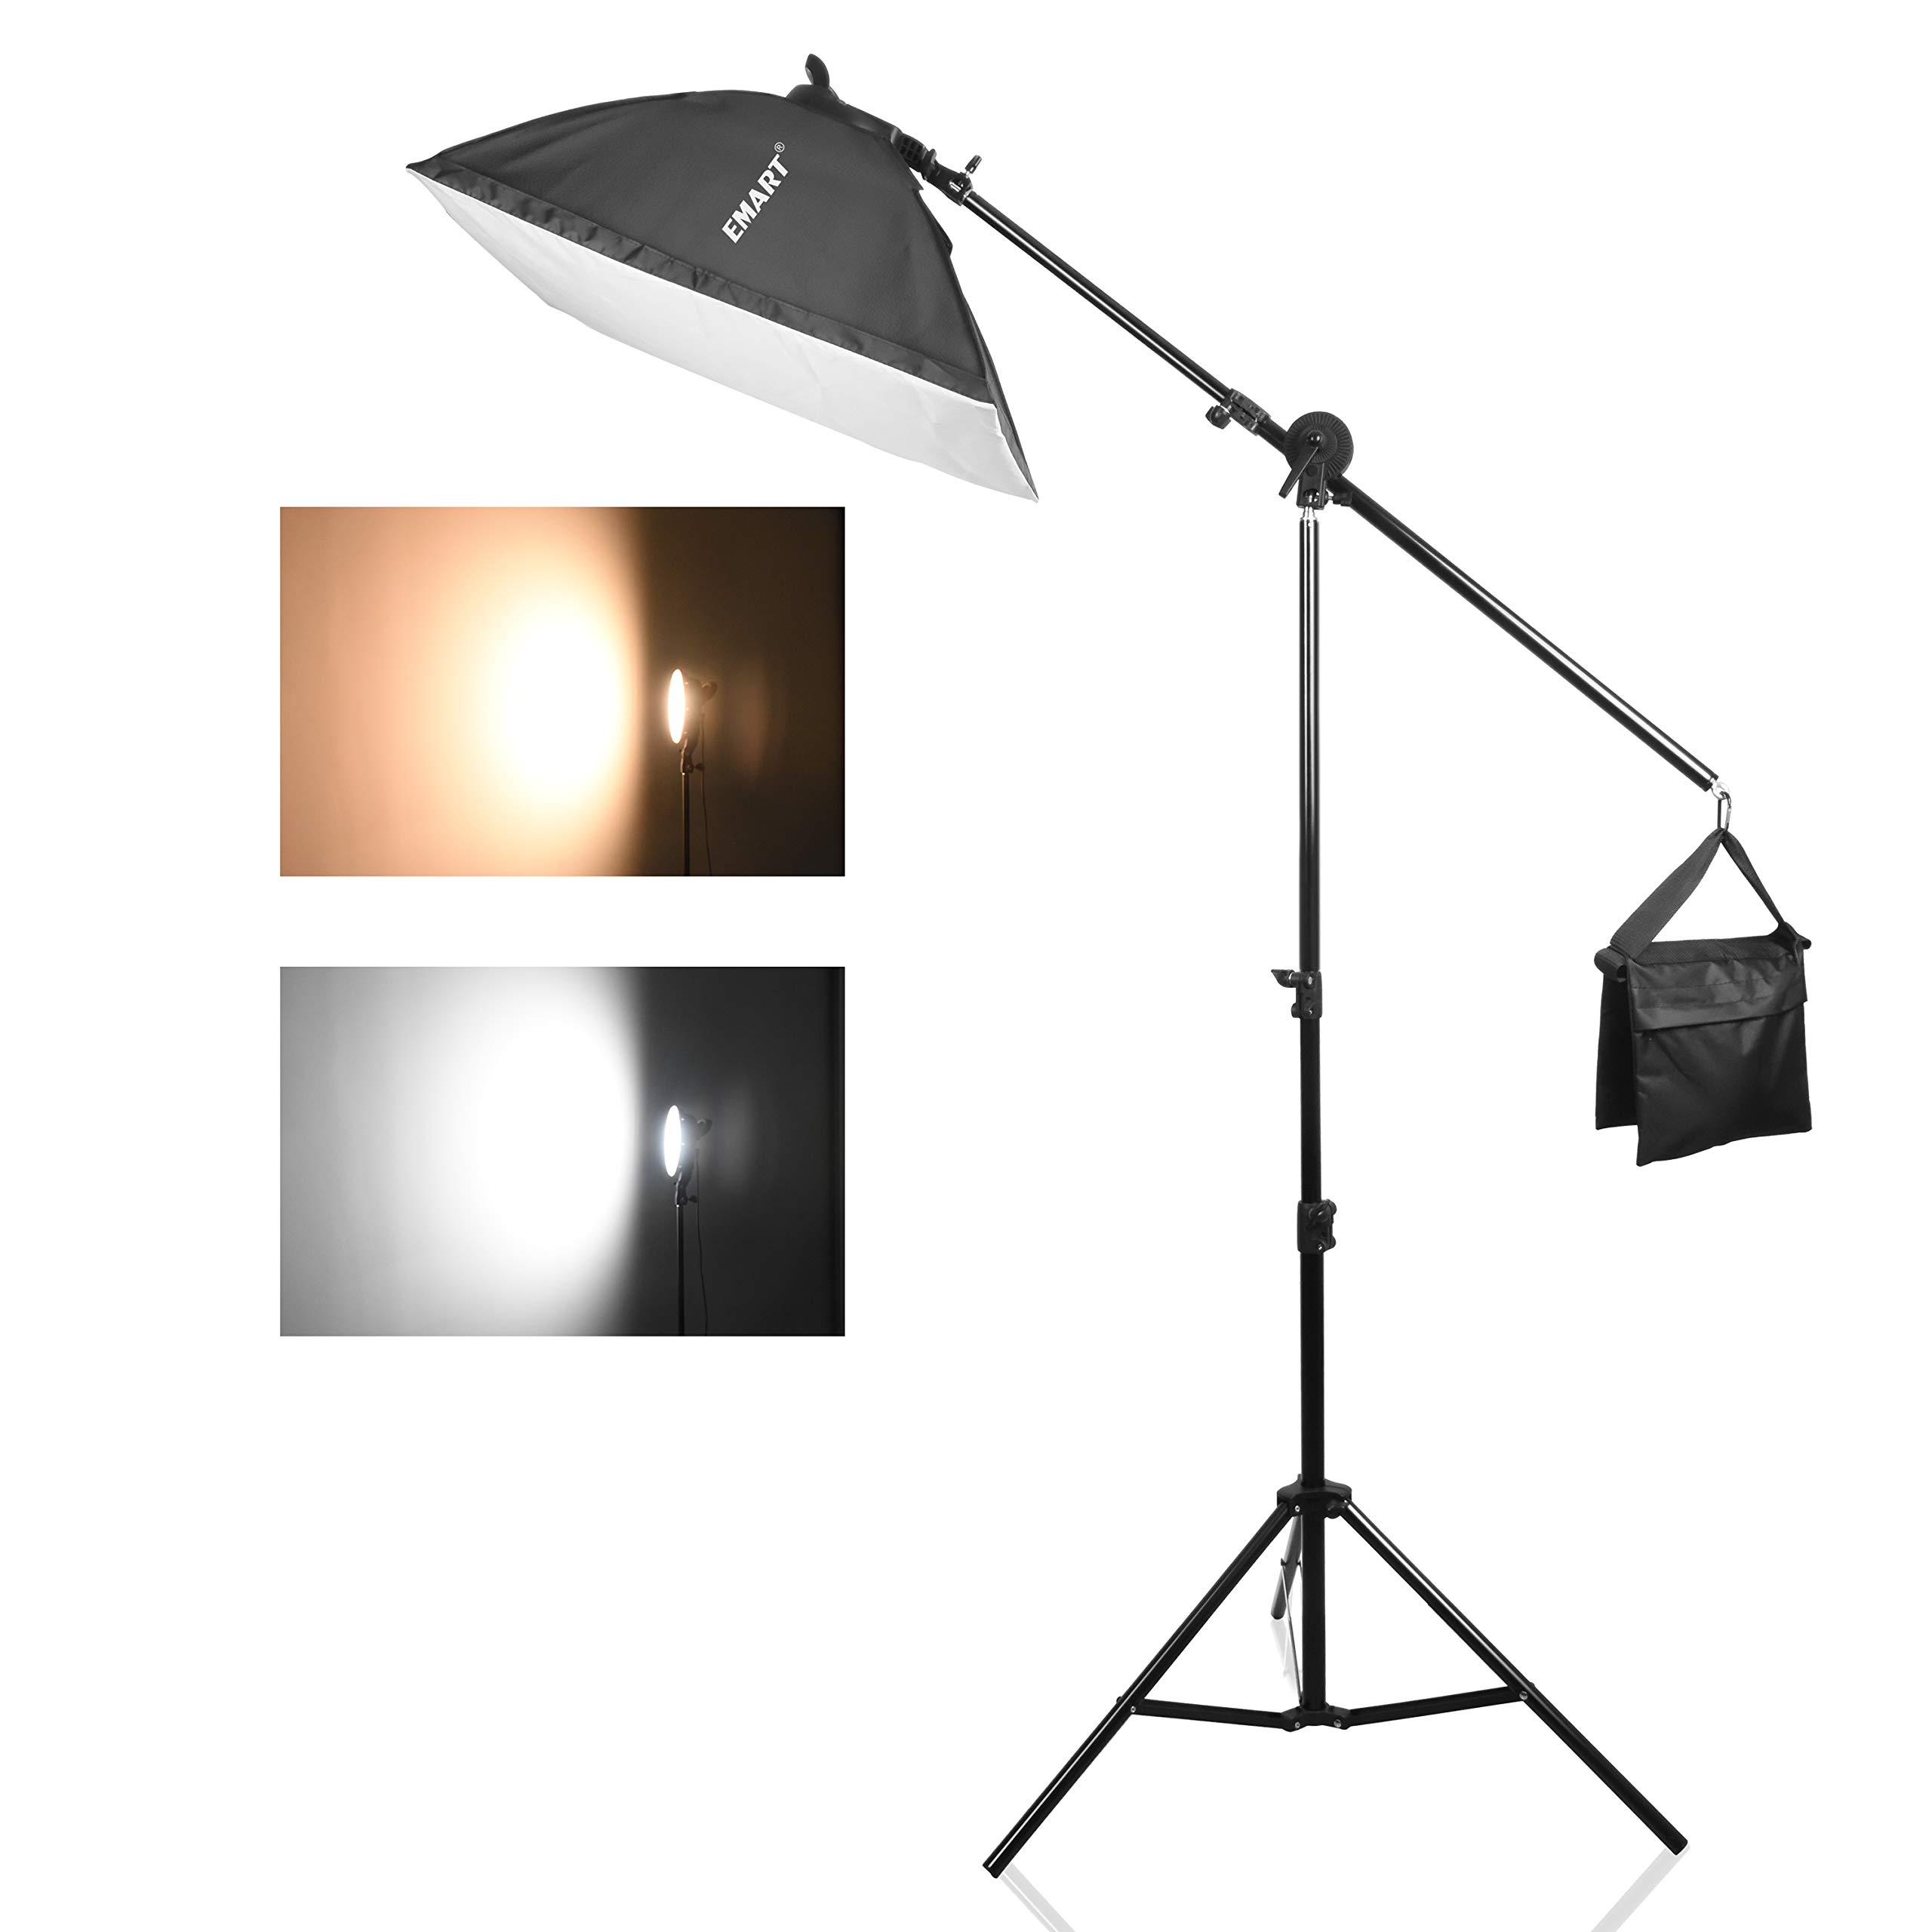 Emart 45W Dimmable LED with Double Color Temperature Continuous Lighting Studio Kit, Boom Arm Hairlight Softbox for Photography Lighting and Photo Vedio Shooting